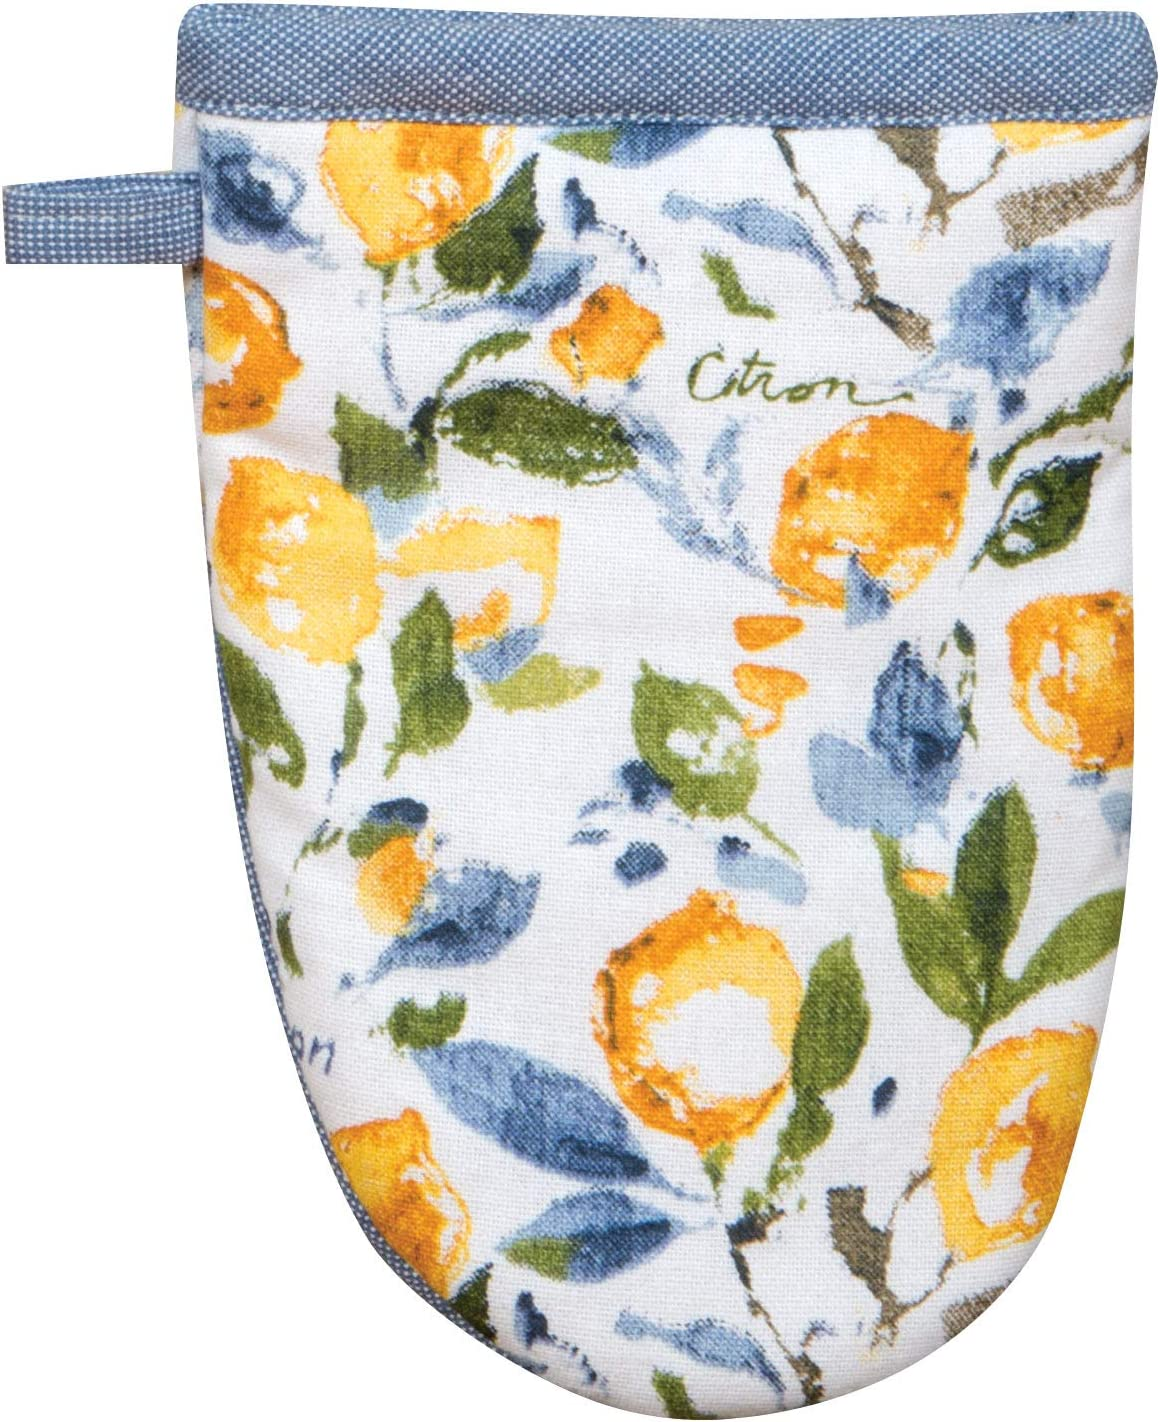 Kay Dee Designs Zest of Happy Grabber Oven Mitt, 5.5 x 7.5, Various